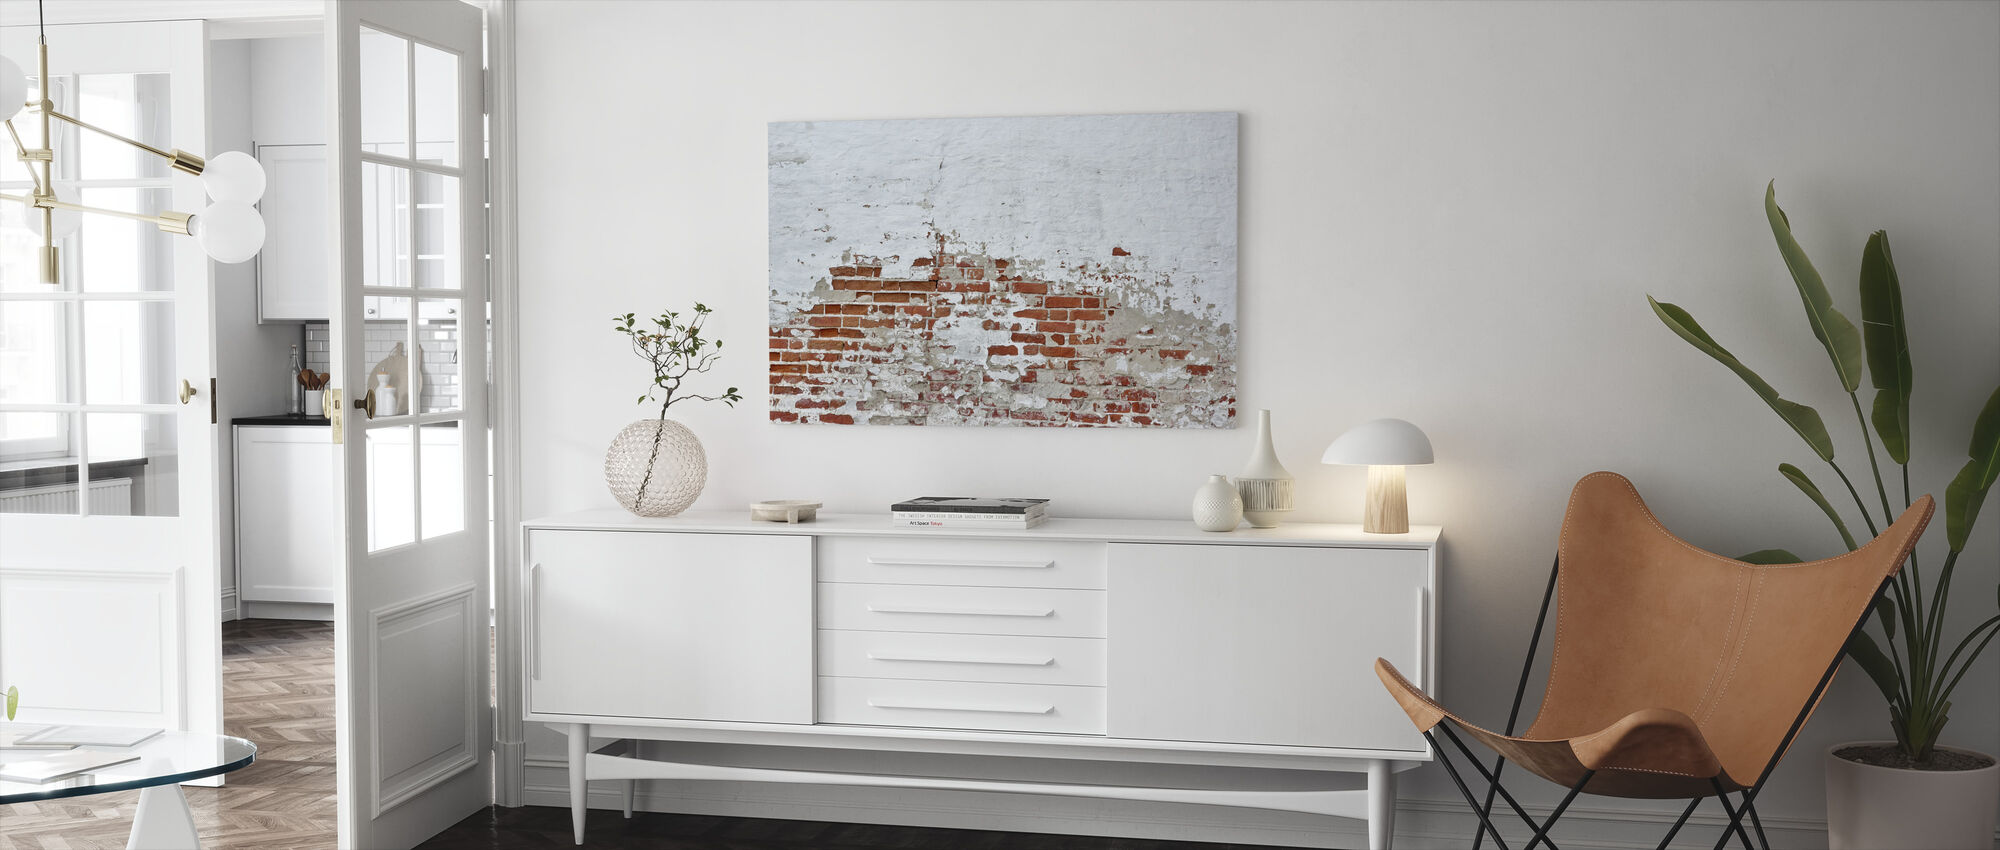 Red Brick Wall with Sprinkled White Plaster - Canvas print - Living Room